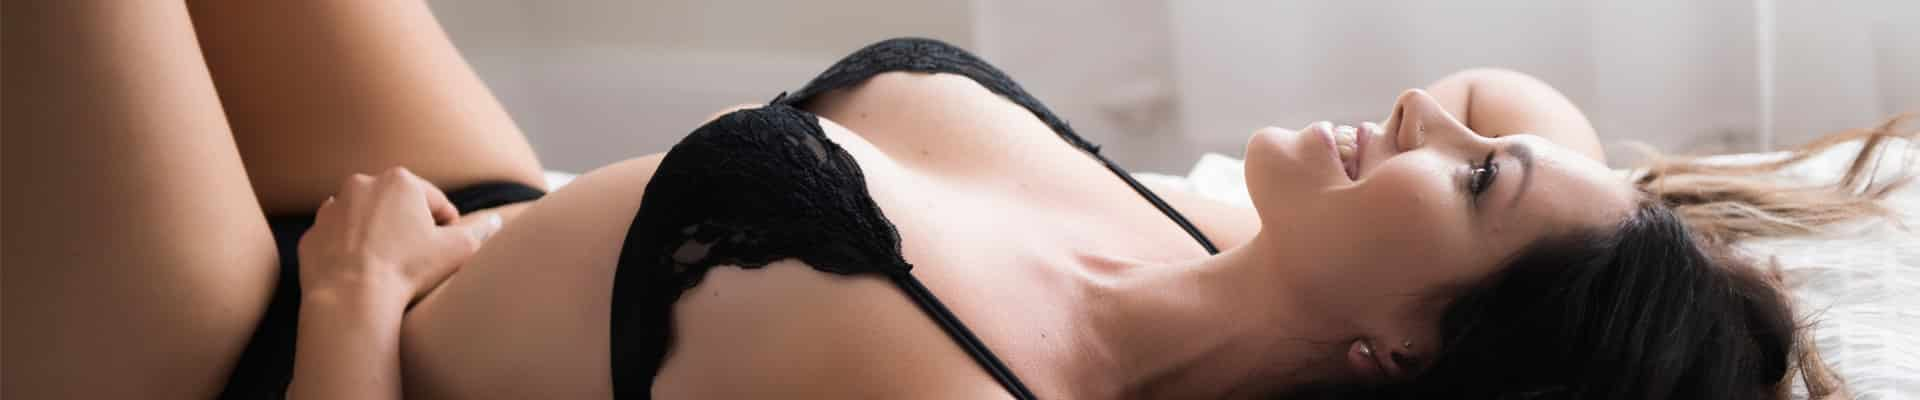 before and after, breast implants, breast surgery, australia, breast excellence, dr mayson